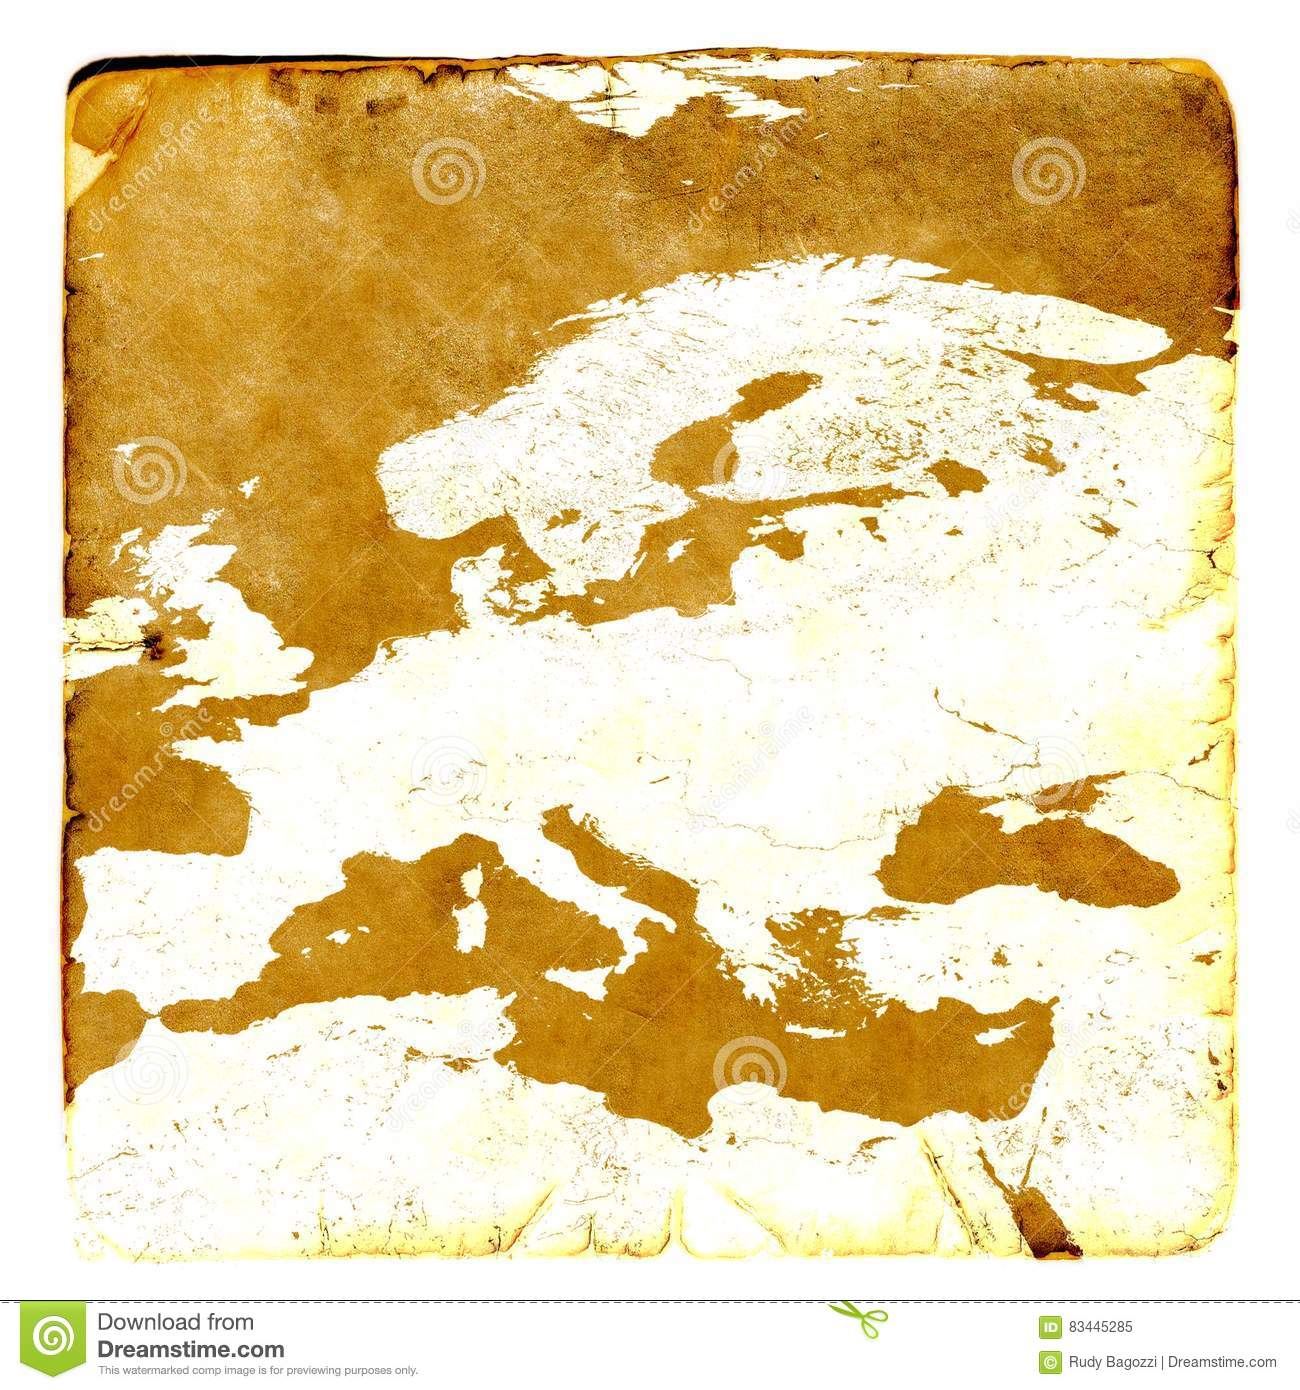 Map Of Europe Blank In Old Style Brown Graphics A Retro Mode On